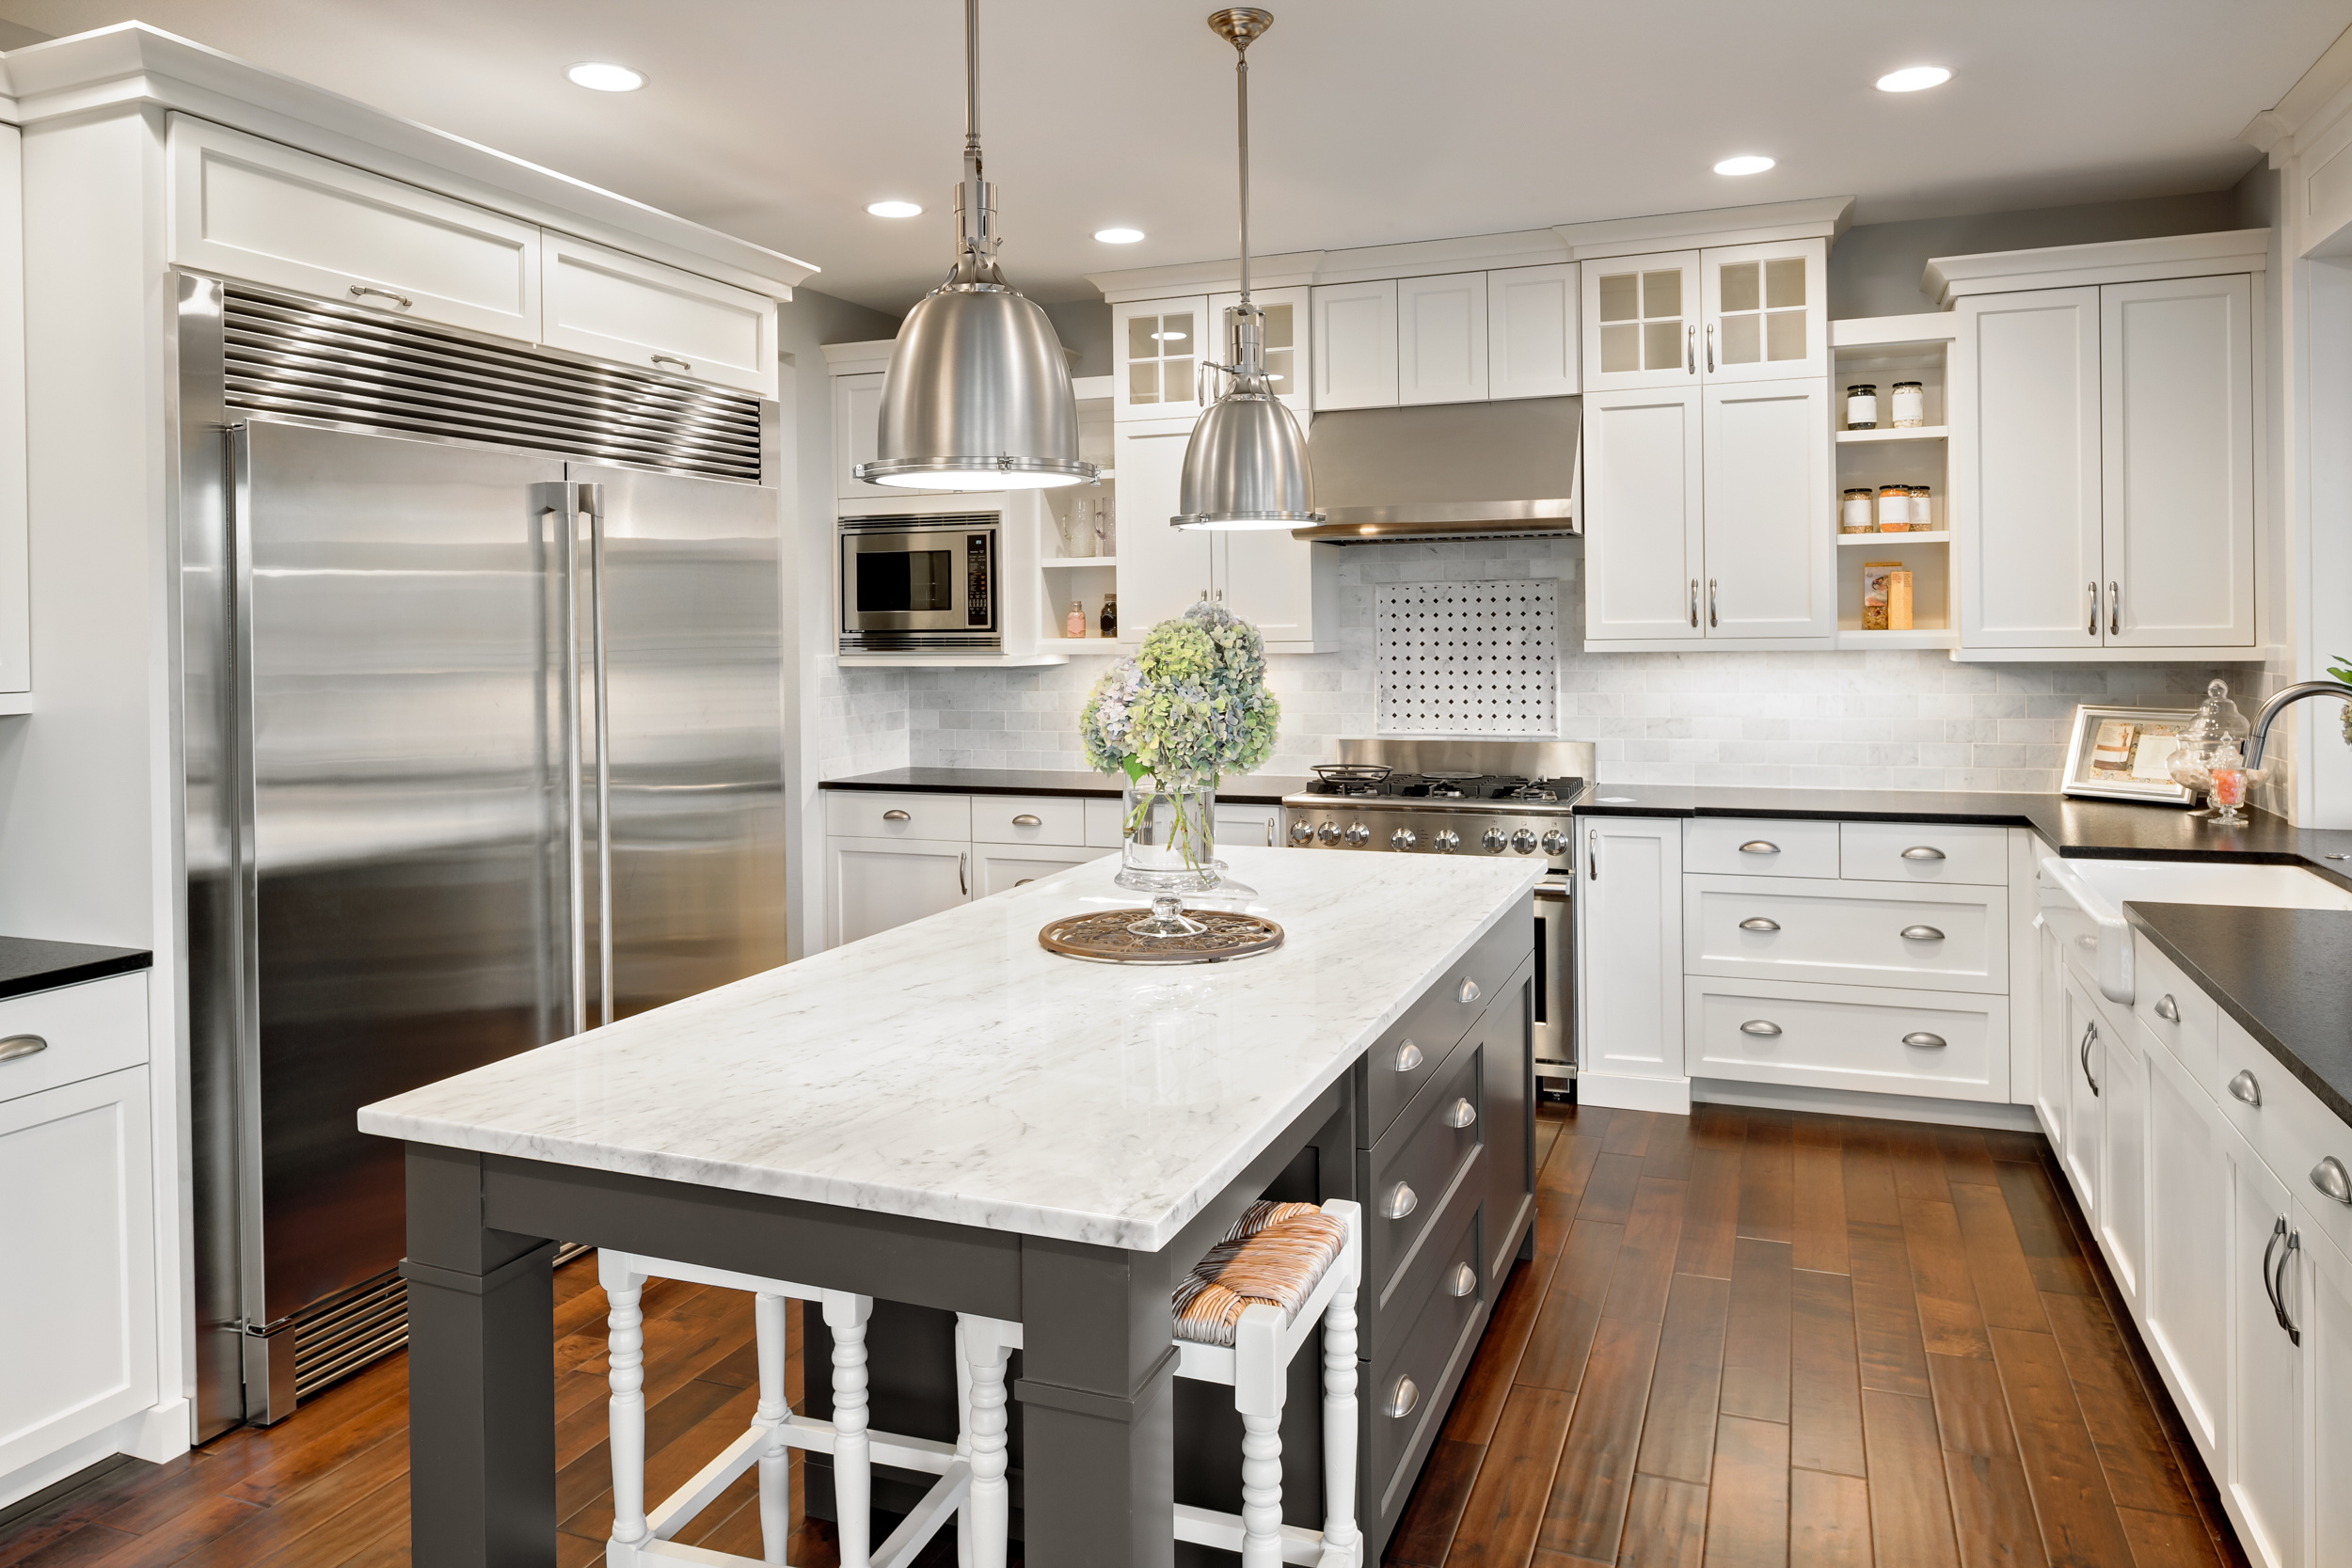 adobe kitchen island with white cabinets